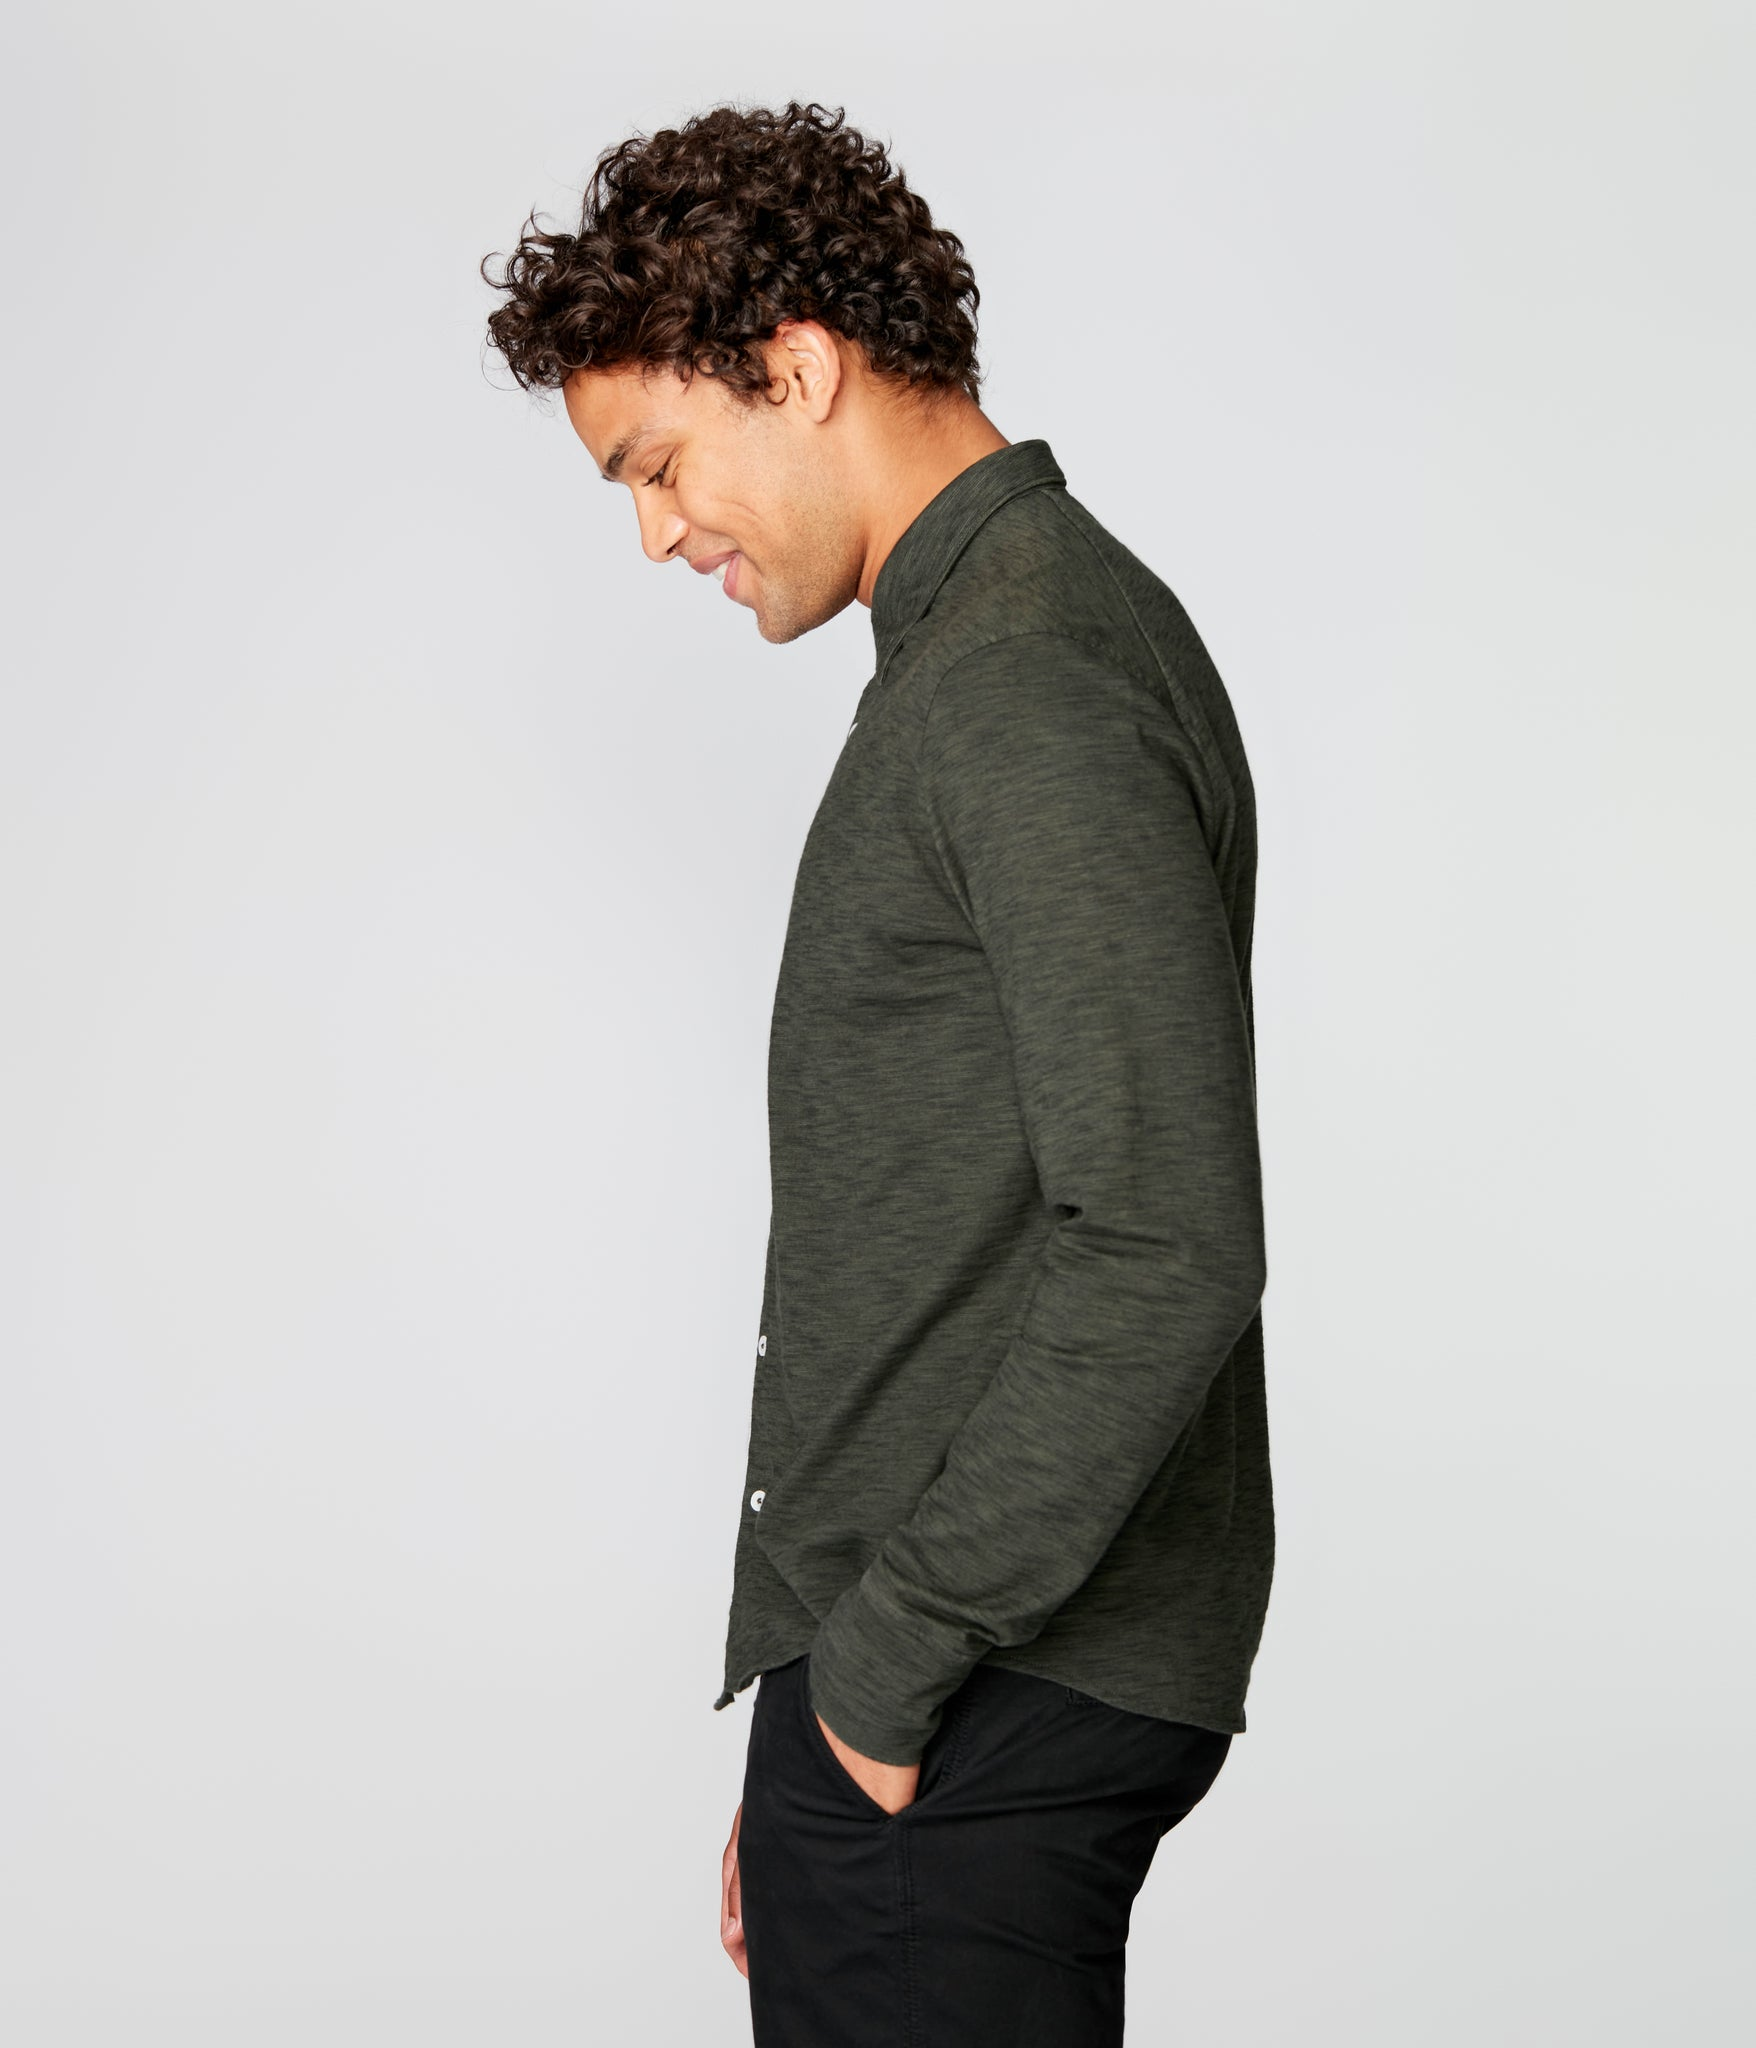 On-Point Soft Shirt in Black Marl Soft Slub - Rifle Green Dark